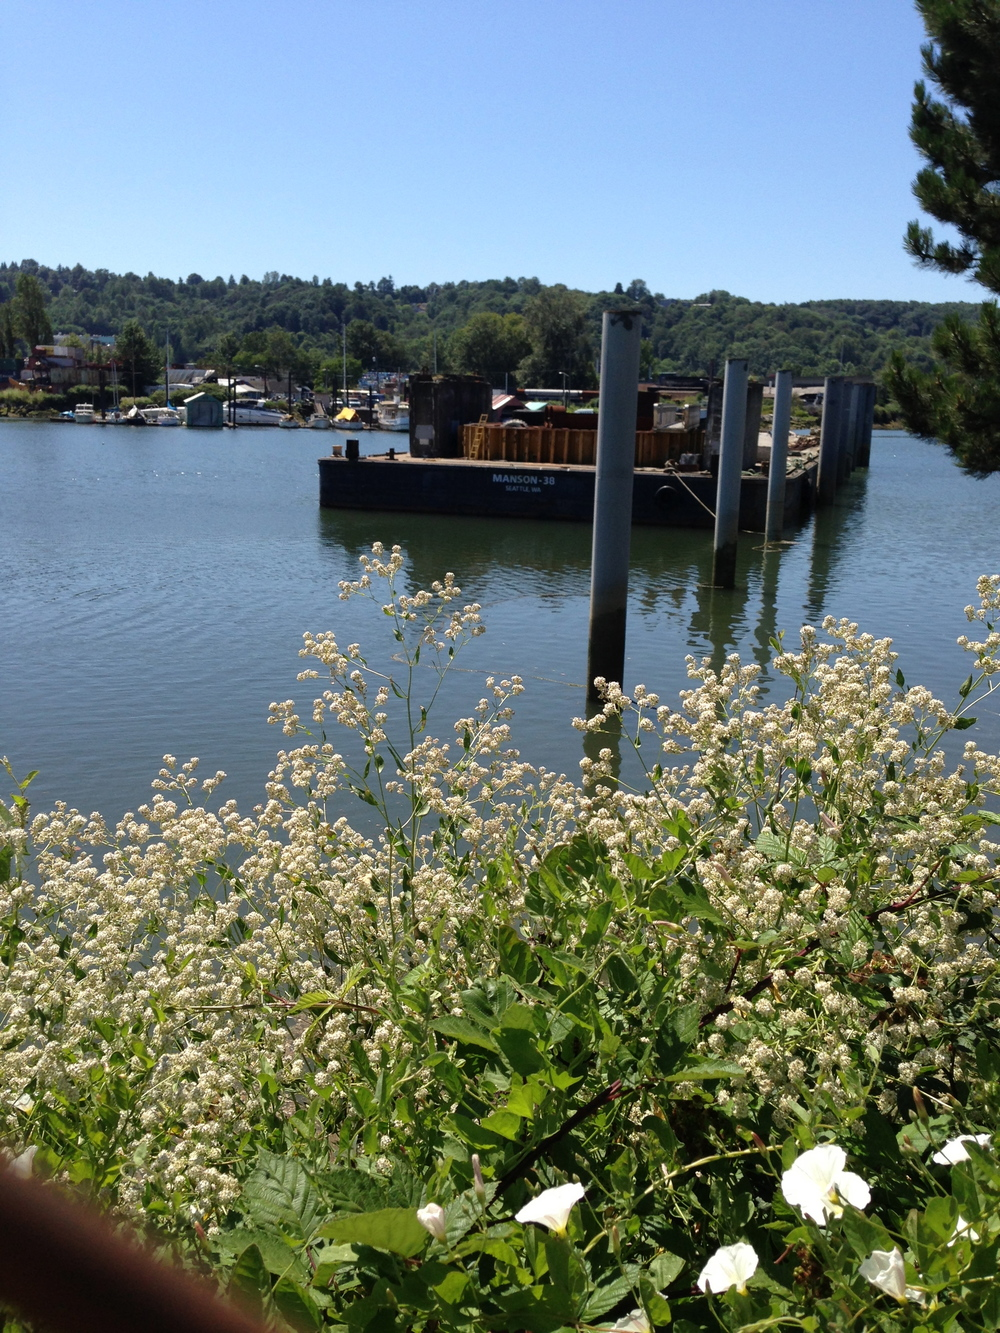 Along the shores of the Duwamish River exist an eclectic mix of green bels, industry and neighborhoods.